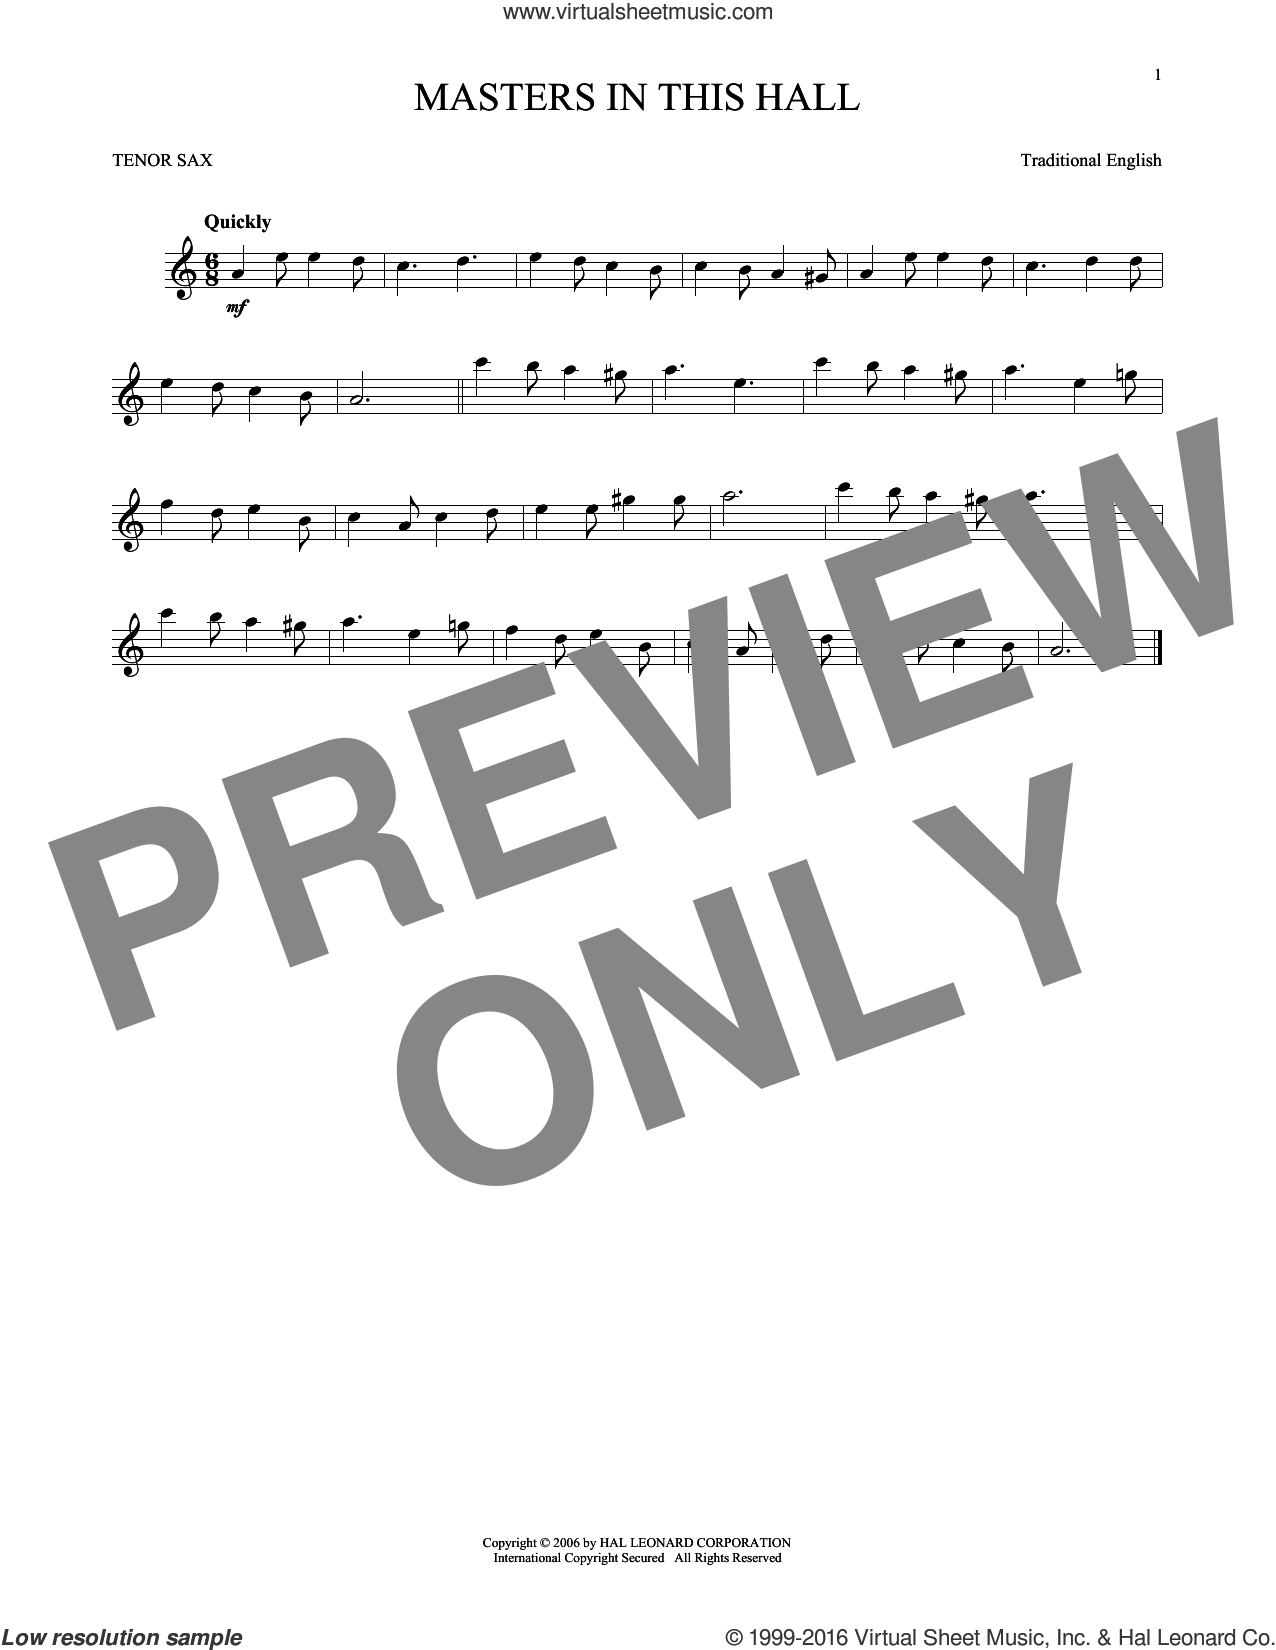 Masters In This Hall sheet music for tenor saxophone solo, intermediate skill level